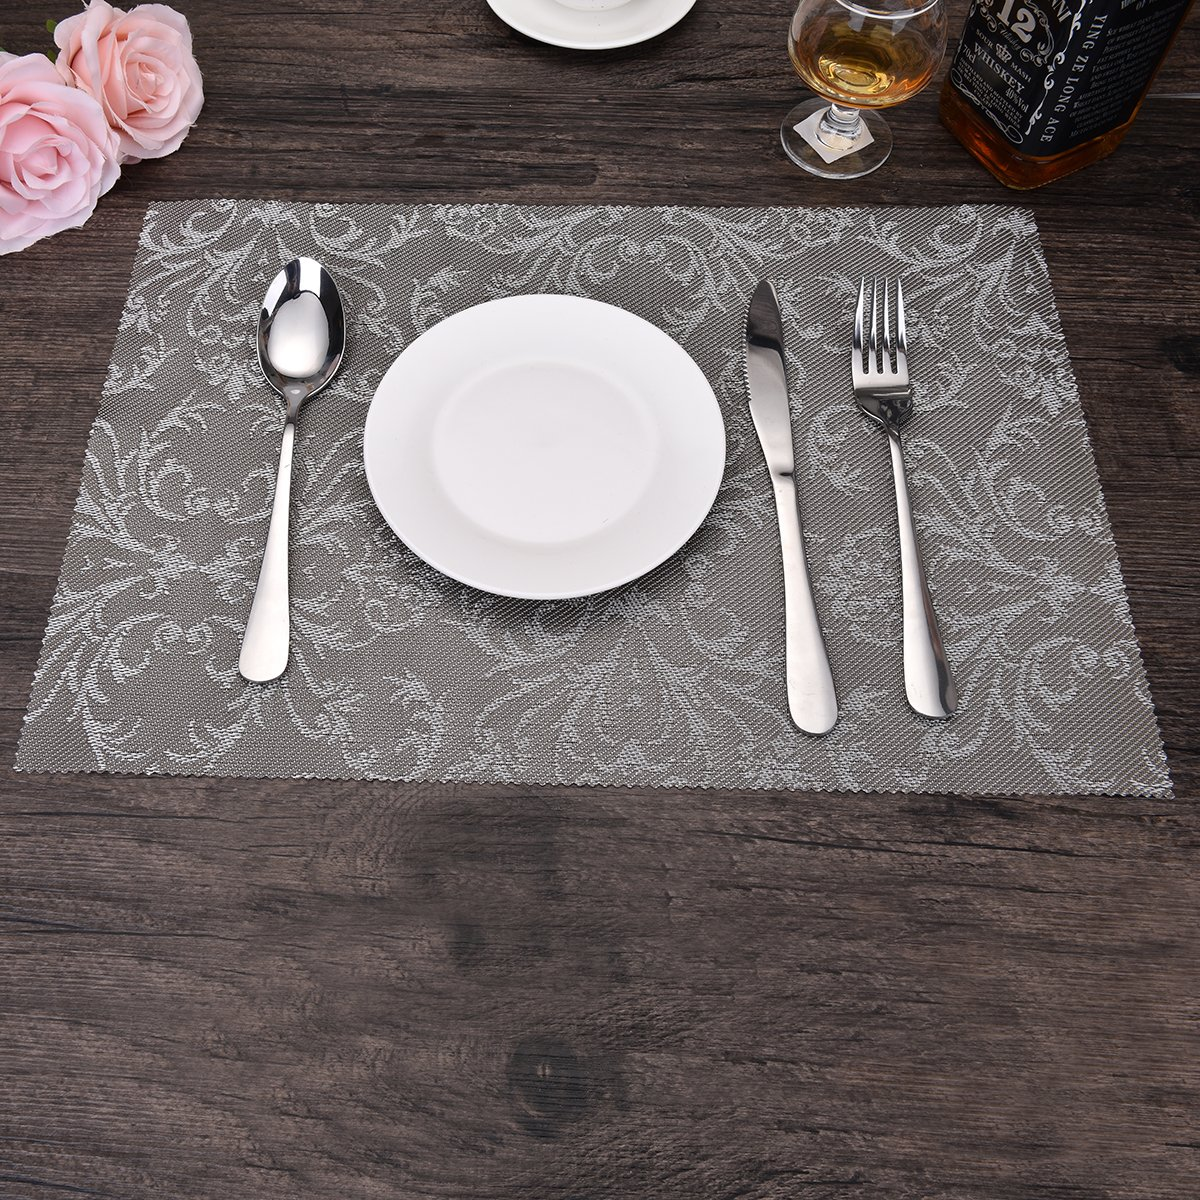 OZCHIN Placemats Dining Kitchen Table Non-slip Insulation Placemat Washable Table Mats Set of 4 Silver by OZCHIN (Image #5)